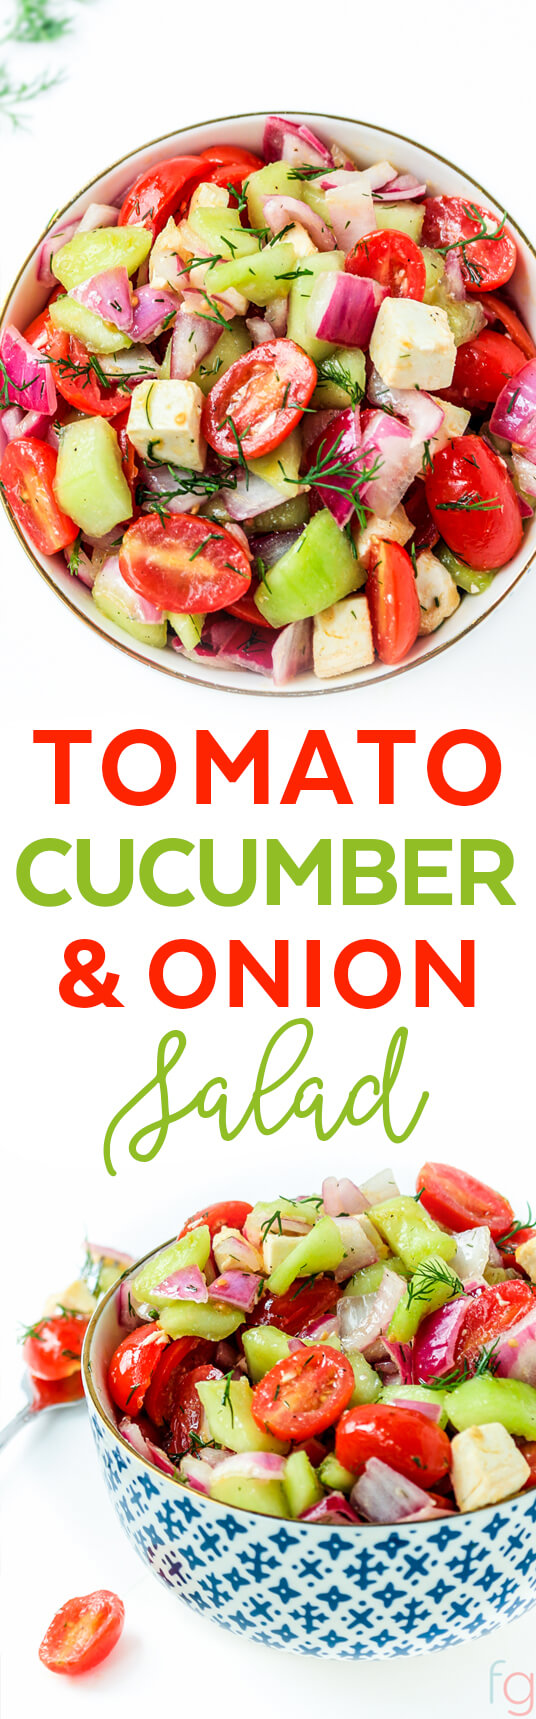 Tomato Cucumber and Onion Salad Vinegar - Tomato Cucumber Salad - Tomato Salad - Tomato Onion Cucumber Salad - Summer Salad Recipes Healthy - Salad Recipes for a Crowd - Vegetarian Recipes